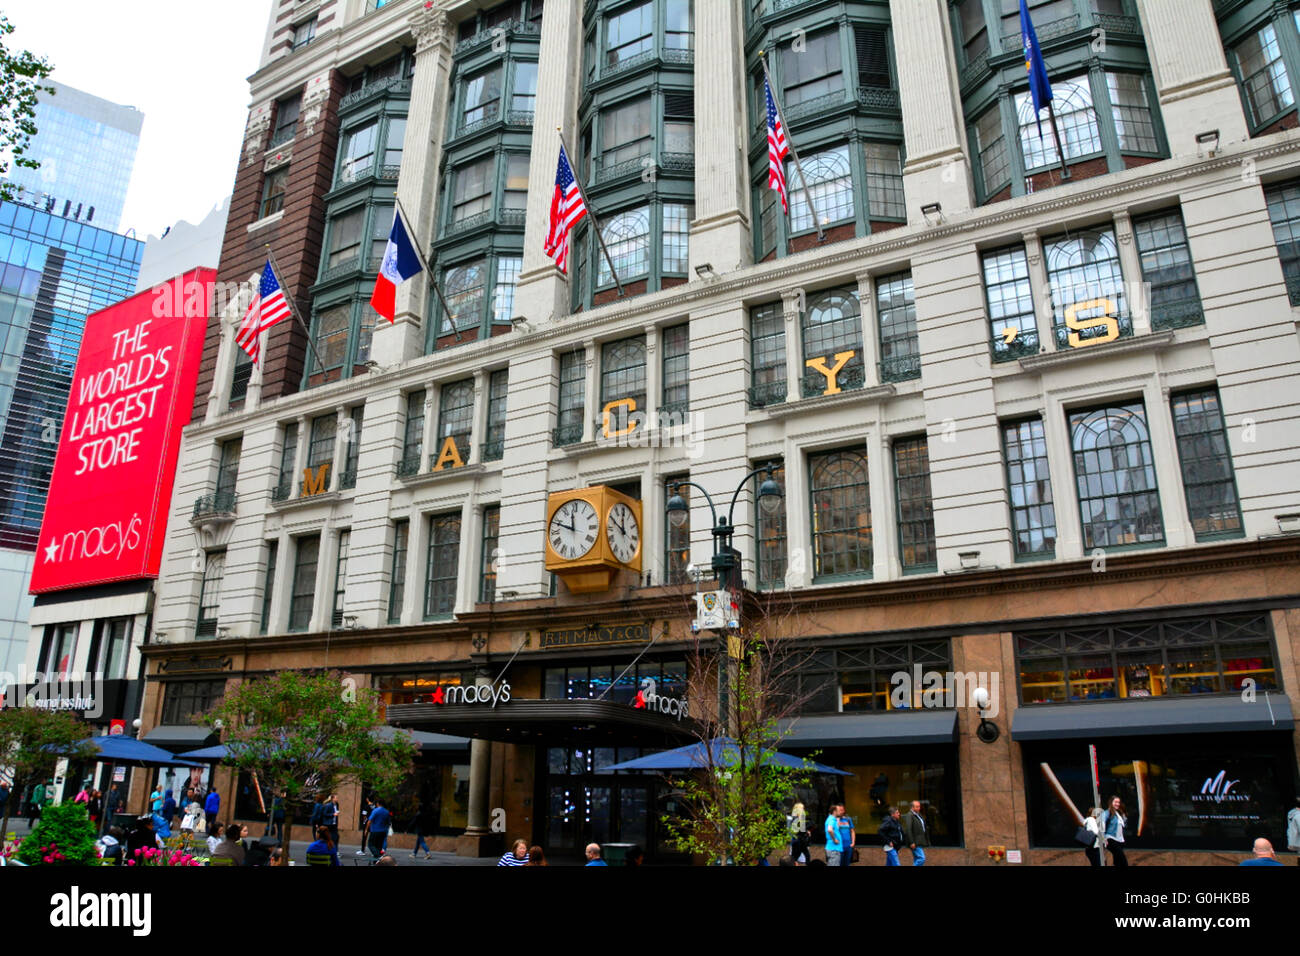 Macy's flagship department store in New York City, USA - Stock Image